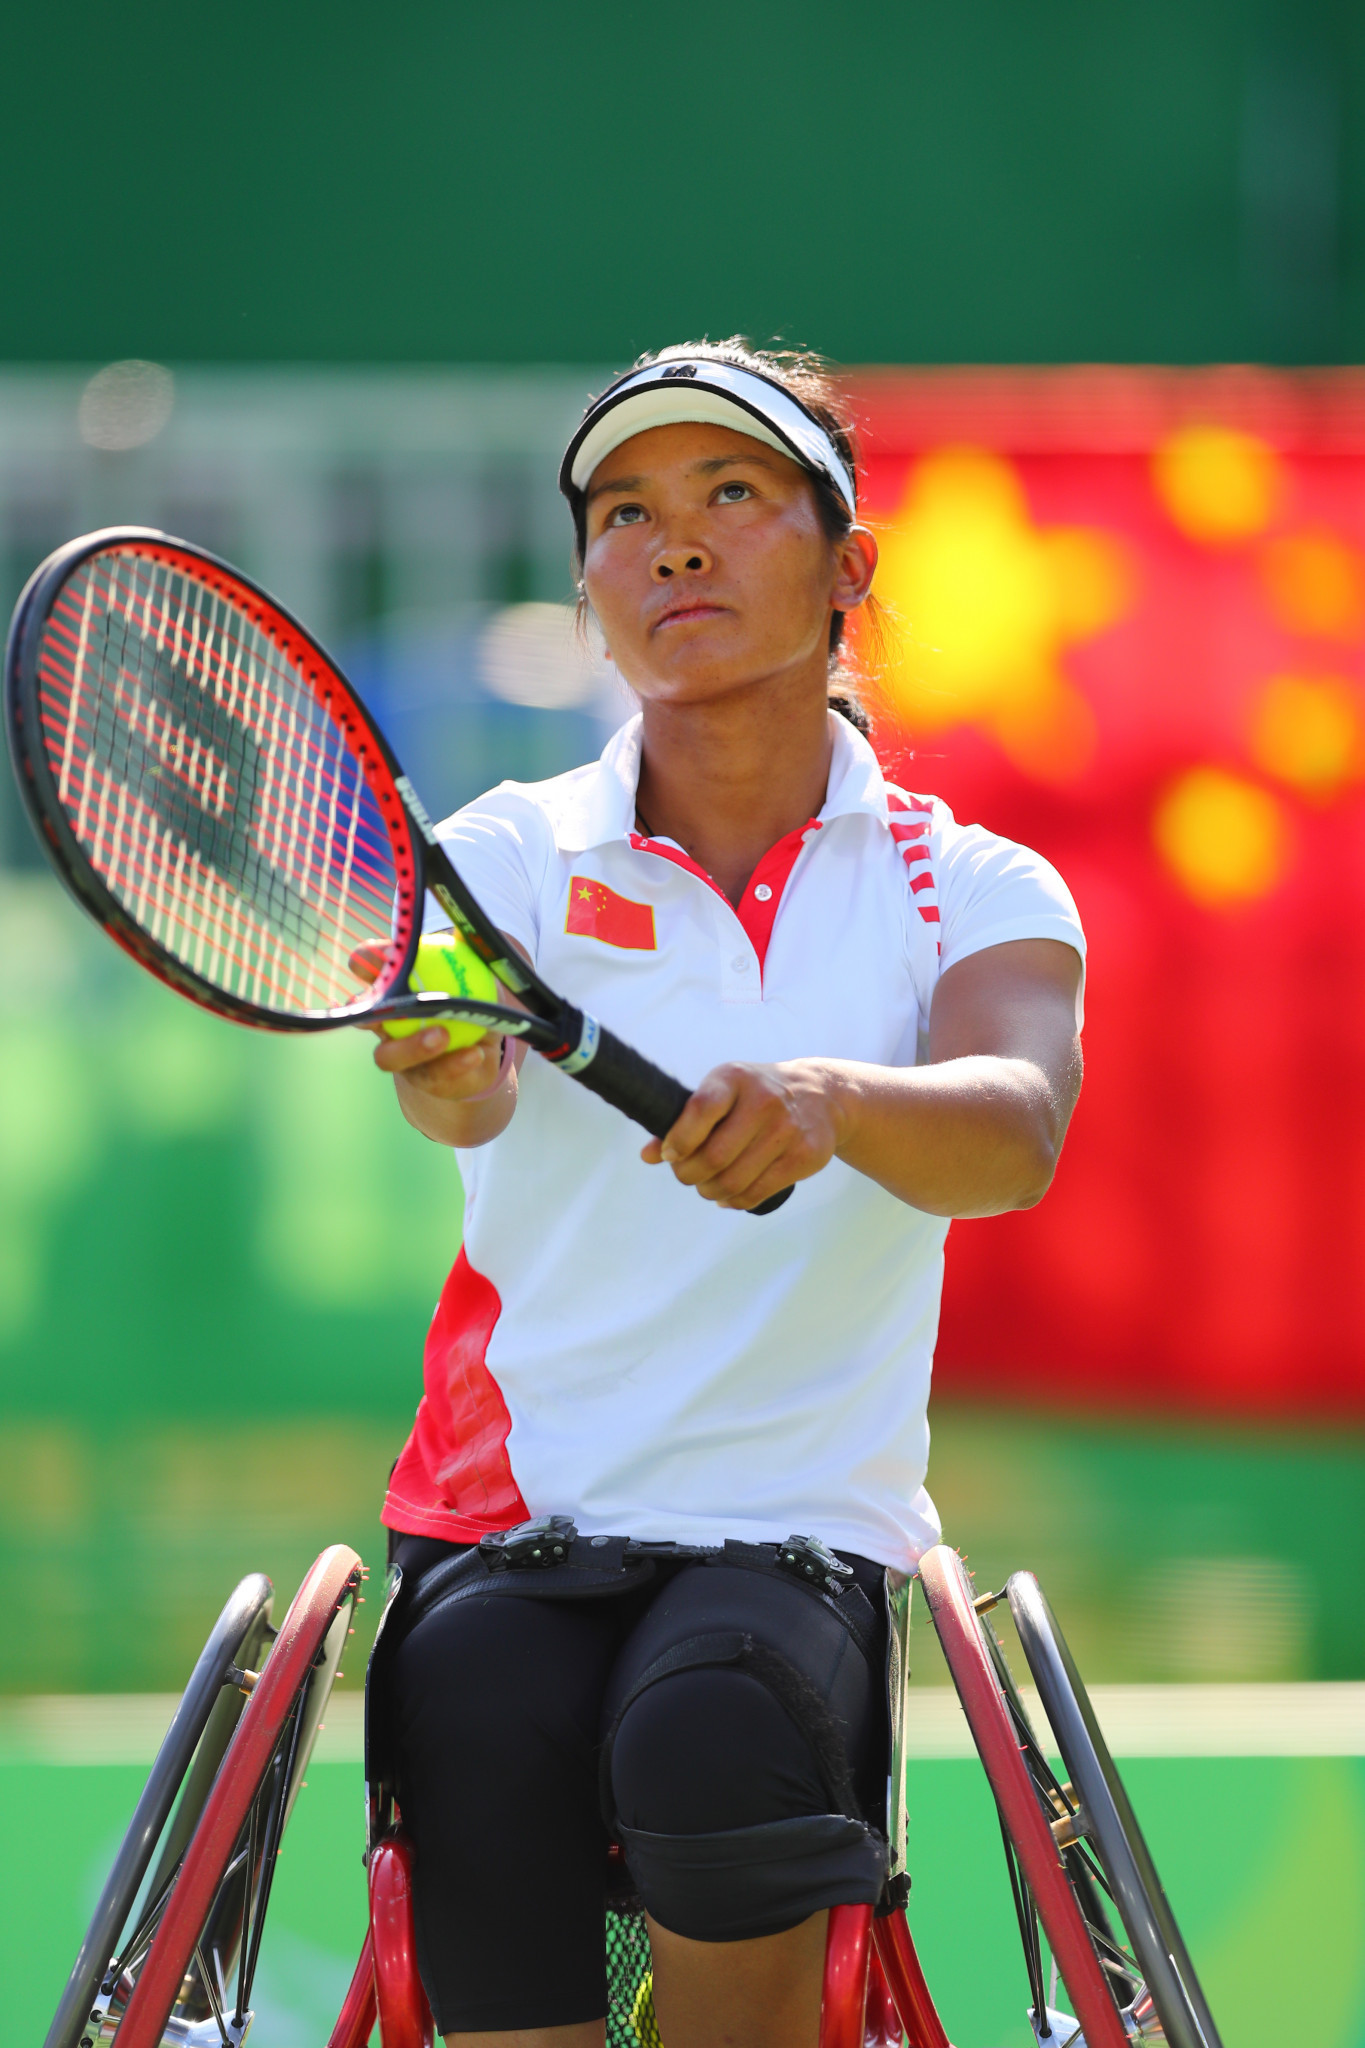 China's Zhenzhen Zhu defeated Dutch player Marjolein Buis to triumph in the Belgian Wheelchair Tennis Open ©Getty Images